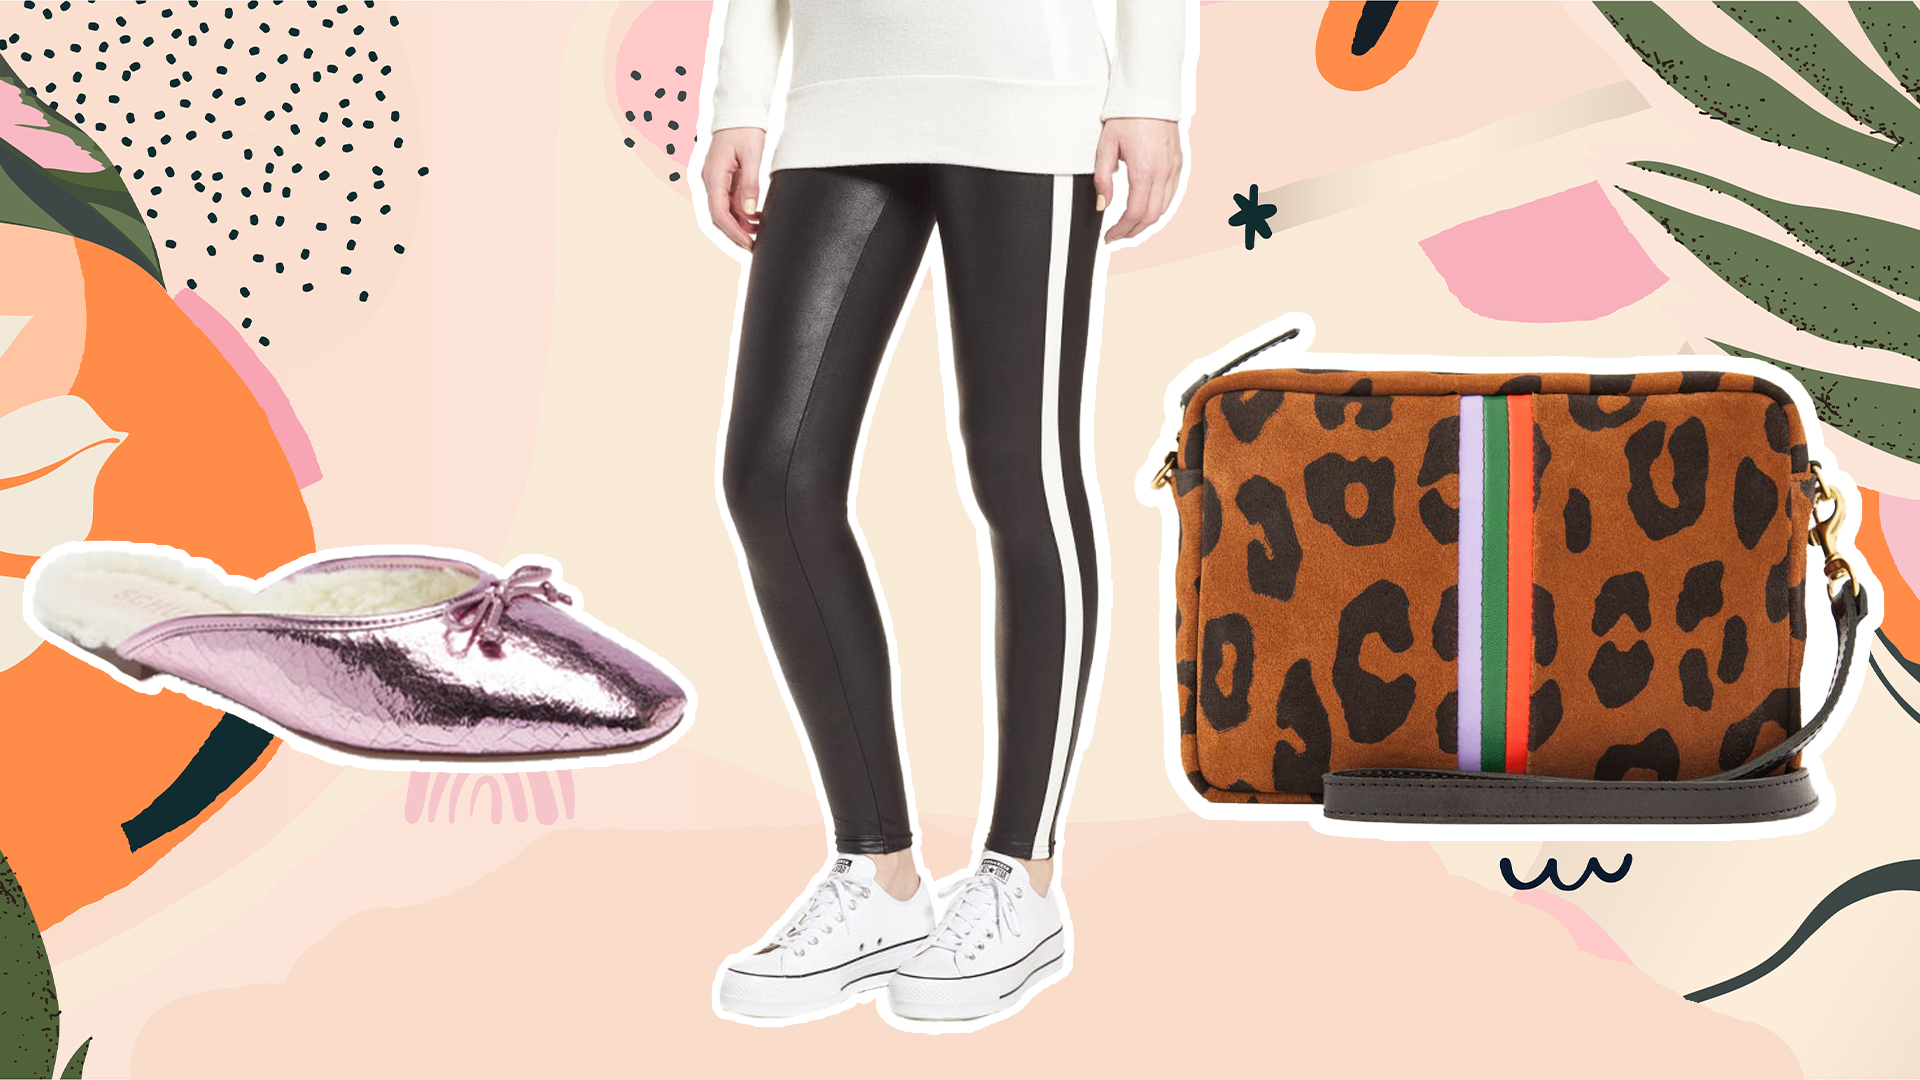 Nordstrom's Epic Winter Sale Is on Now — Add These Items in Your Cart Before They Sell Out